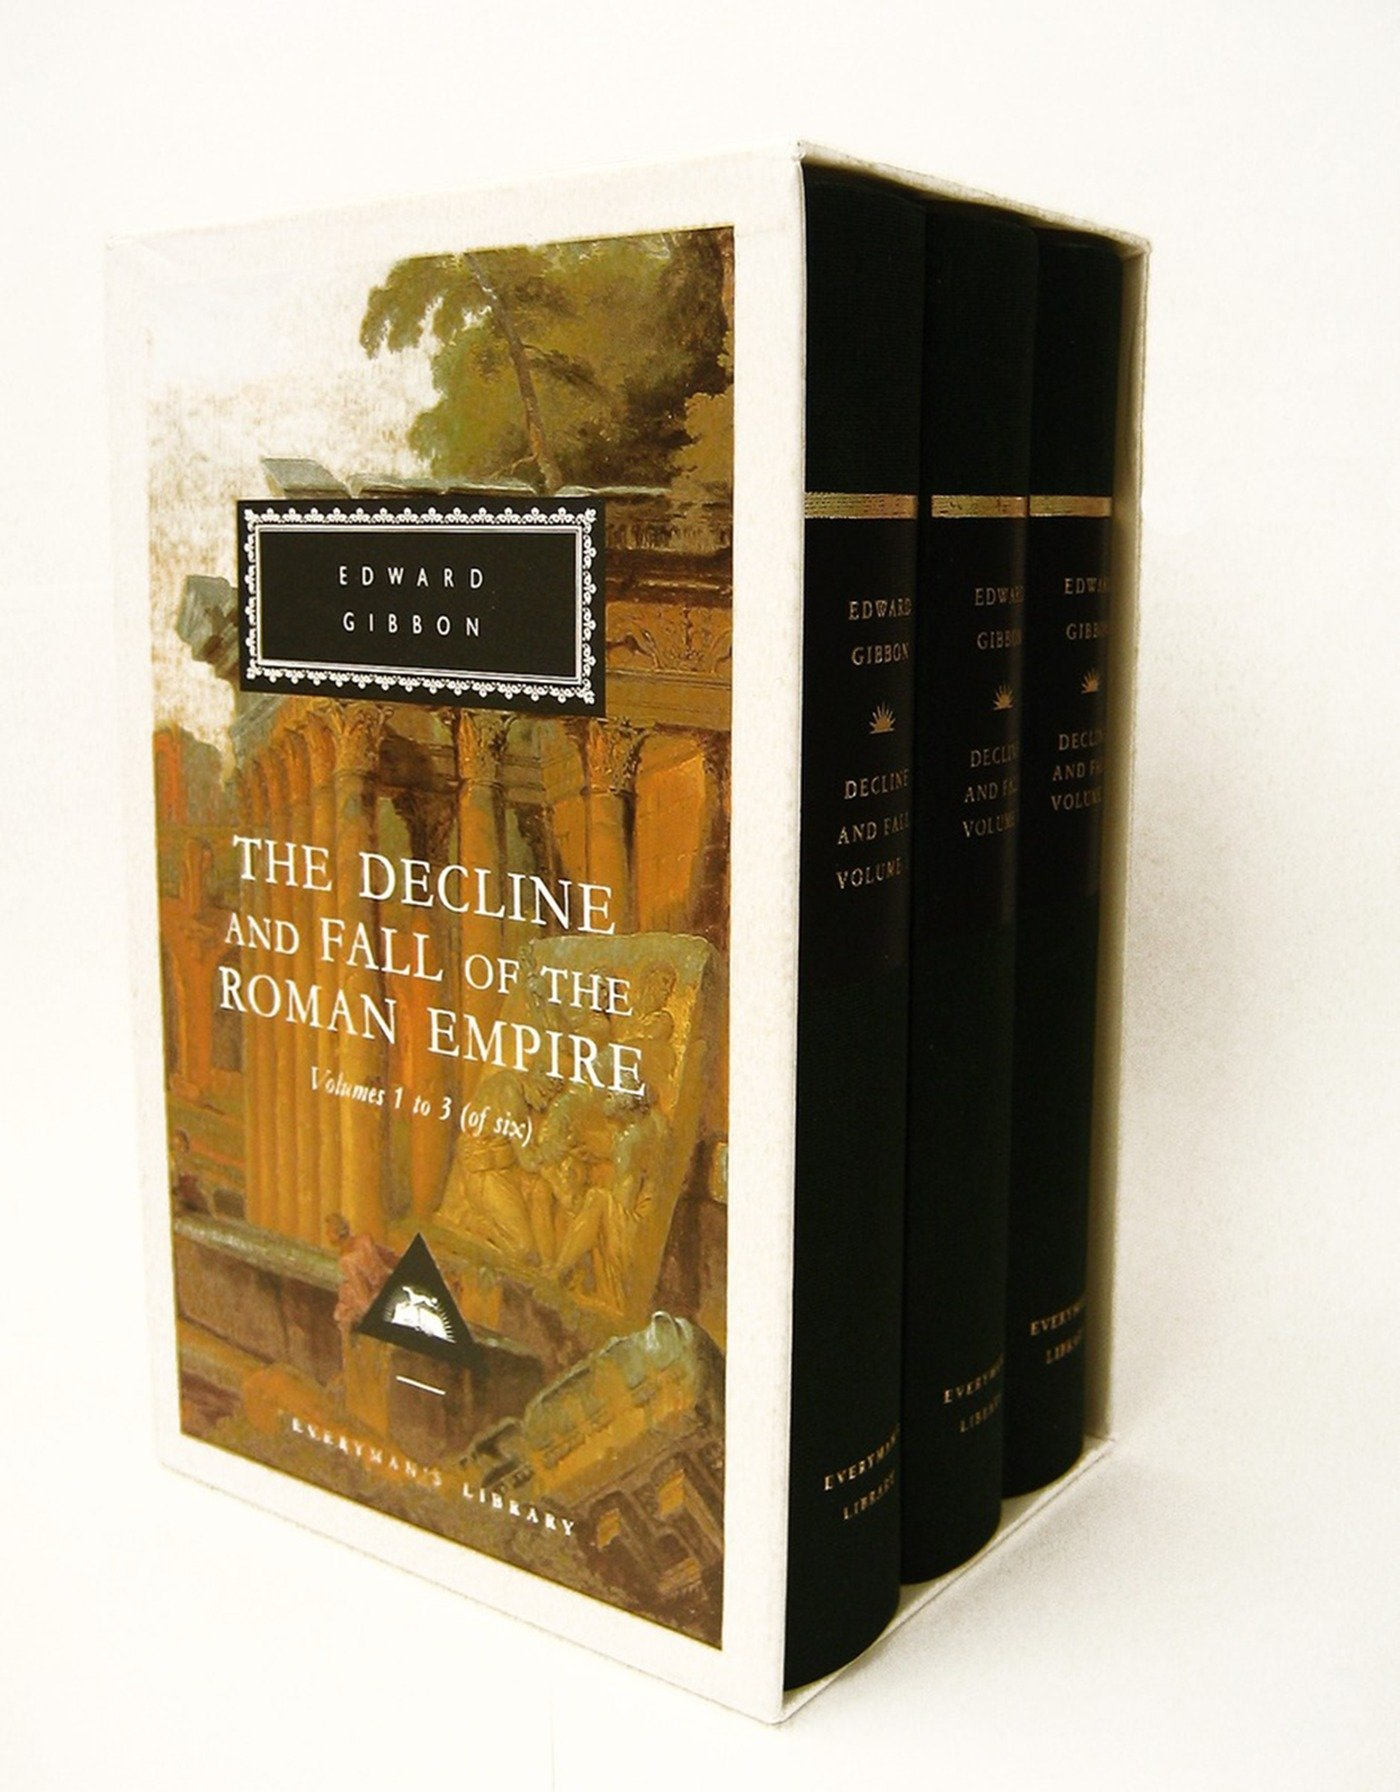 The Decline and Fall of the Roman Empire: Volumes 1-3 of 6 (Everyman's Library) by Brand: Everyman's Library